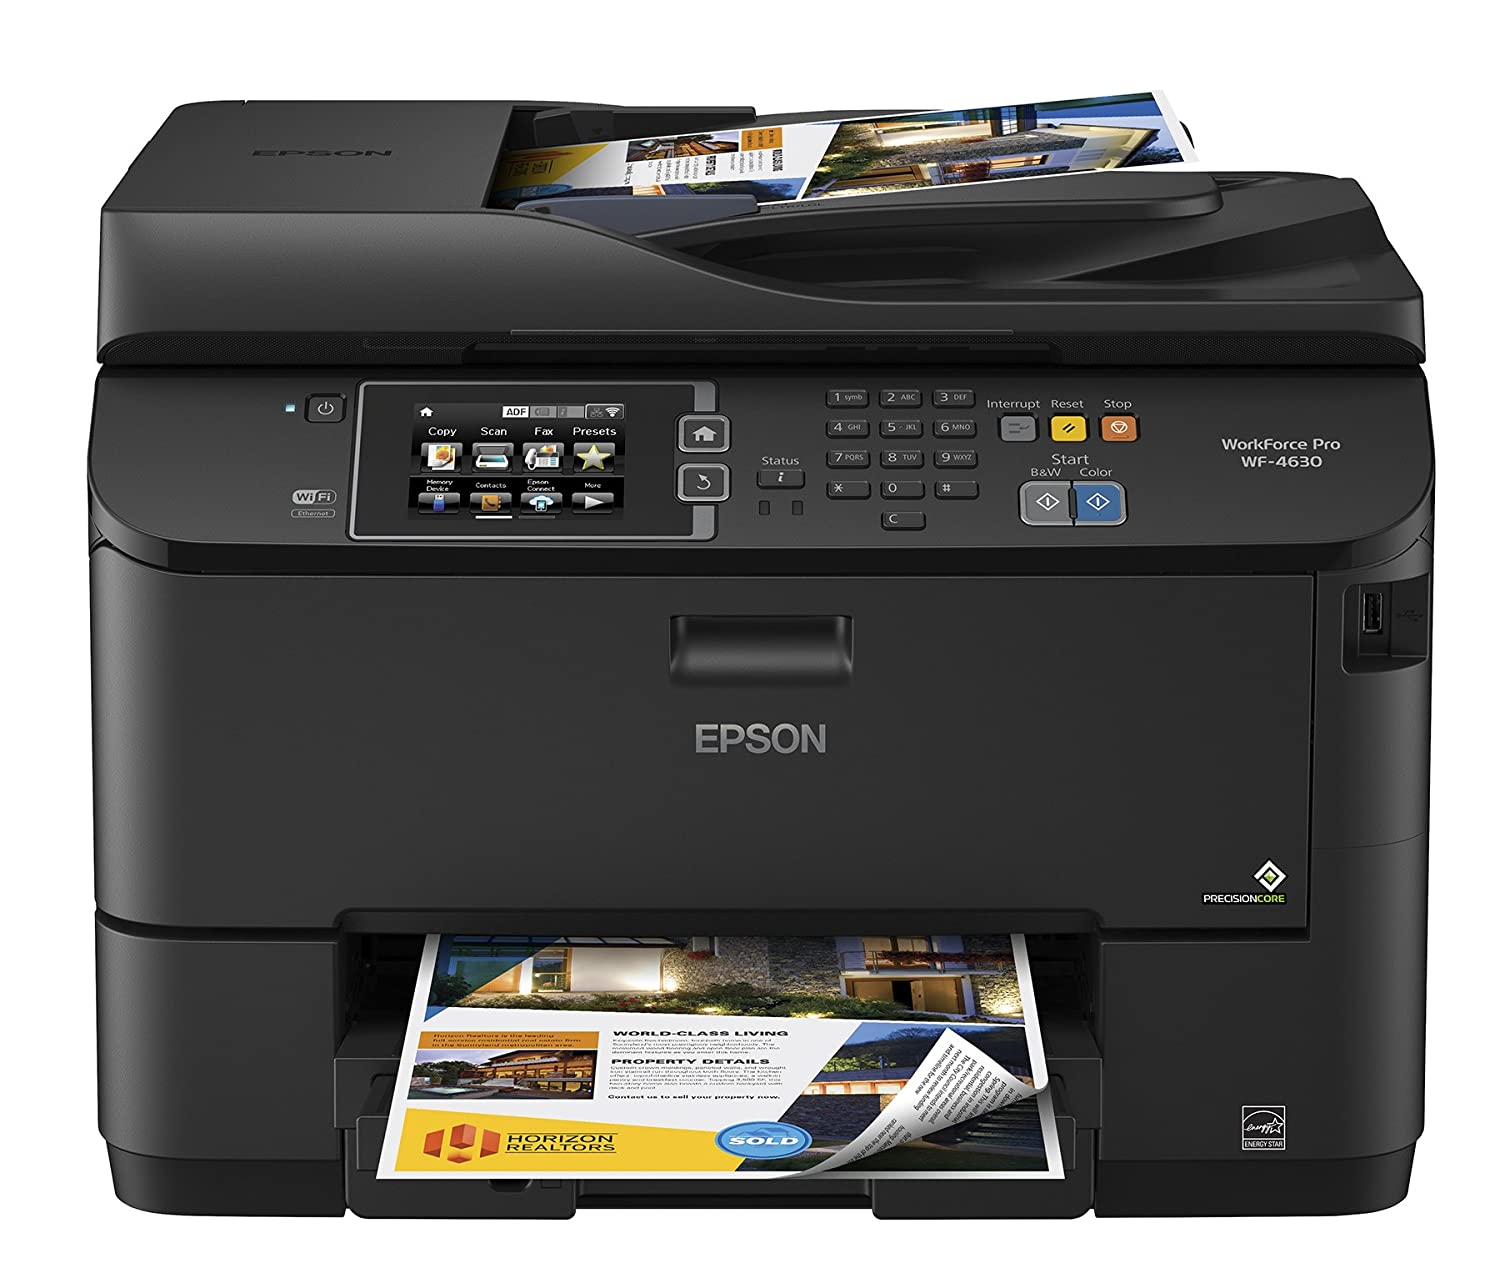 Amazon.com: Epson WorkForce Pro WF-4630 Wireless Color All-in-One Inkjet  Printer with Scanner and Copier, Amazon Dash Replenishment Enabled: WE sale